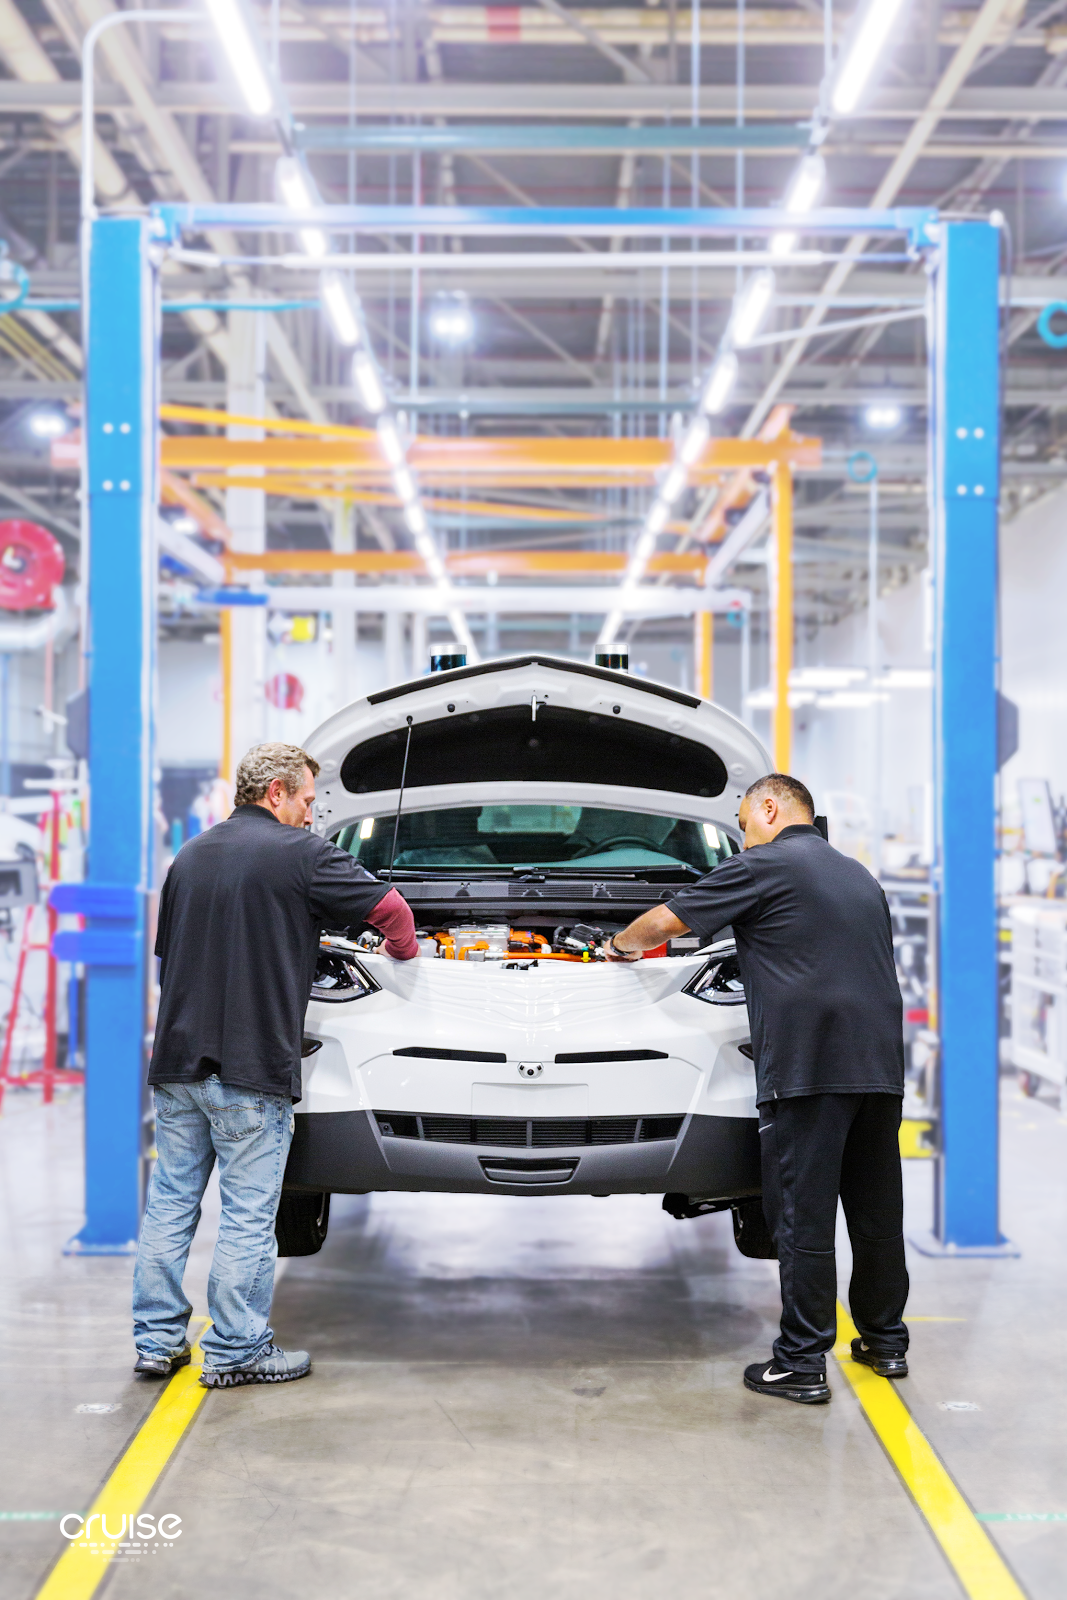 Two workers on an assembly line have their hands inside the engine compartment of a Chevy Bolt electric vehicle.